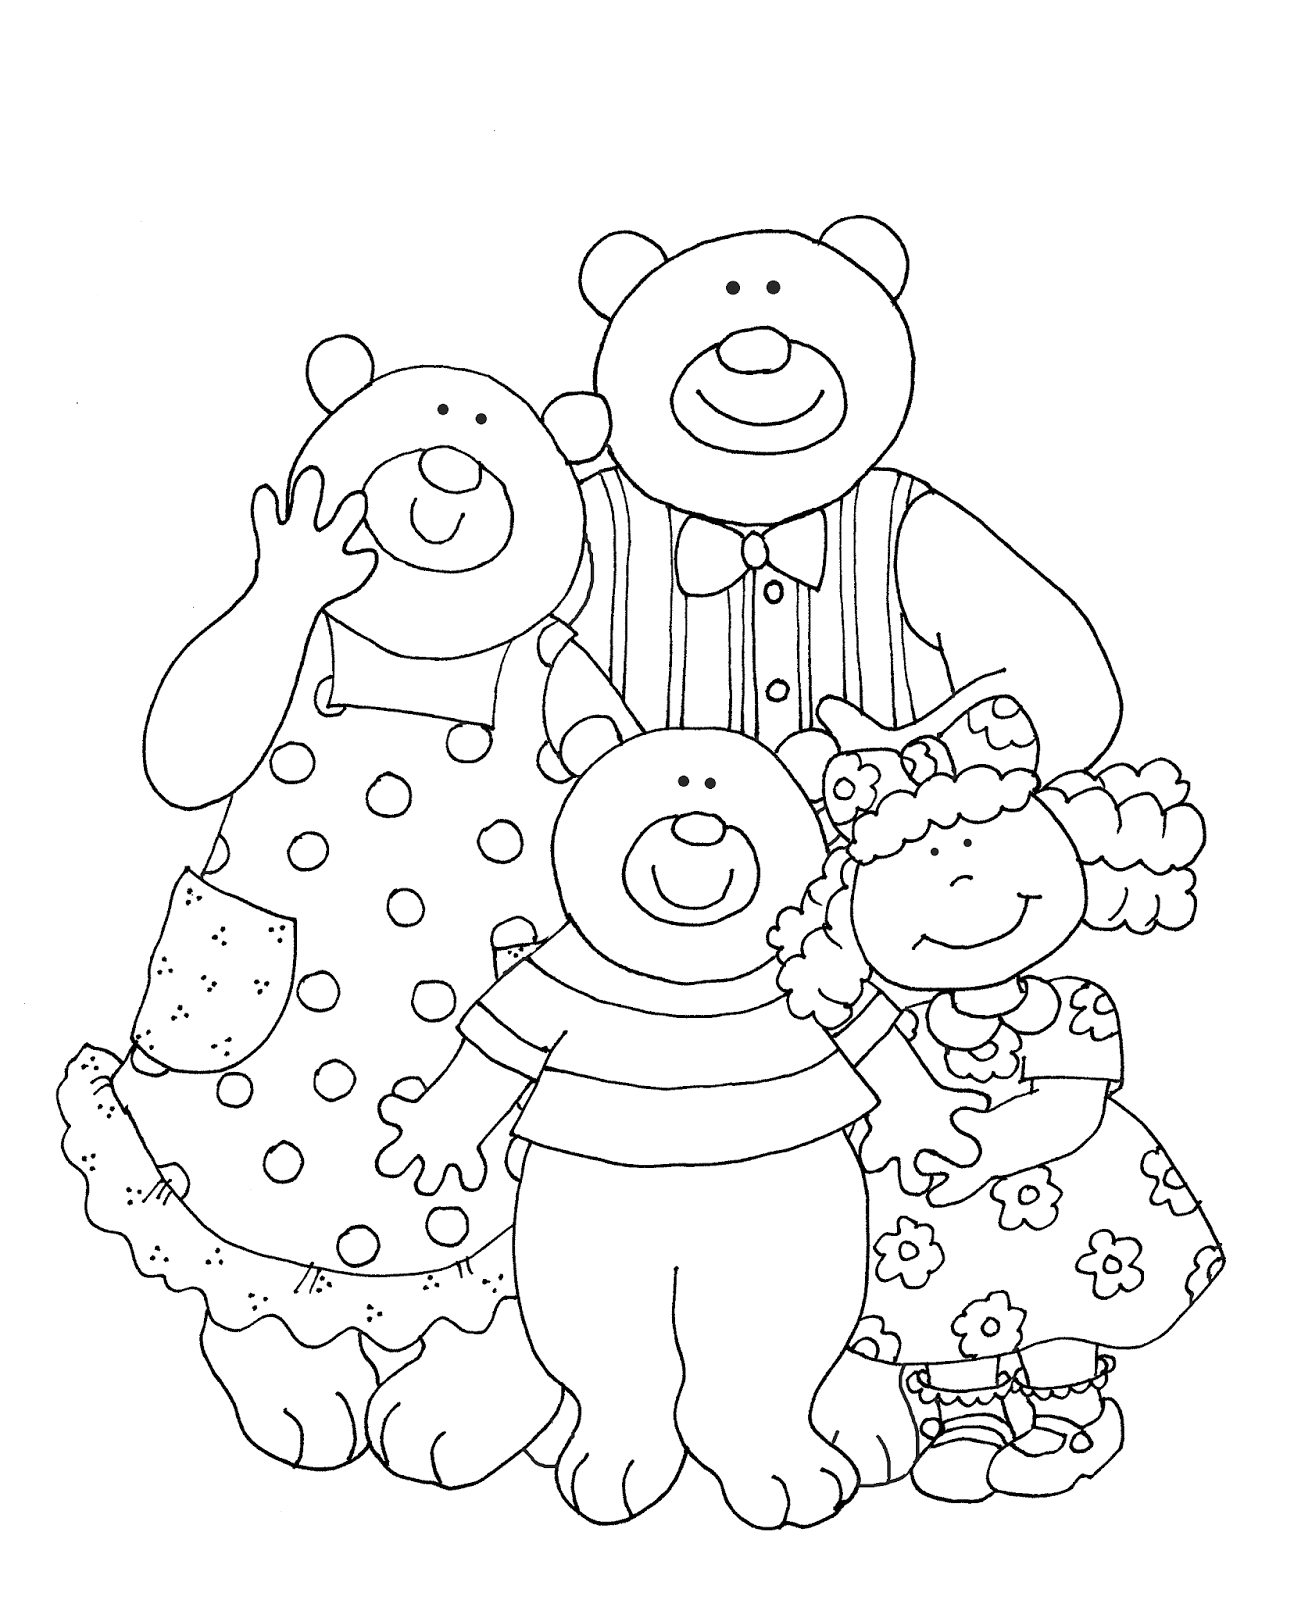 Goldilocks and the Three Bears Coloring Page Free Dearie Dolls Digi Stamps Goldilocks and the Three Bears